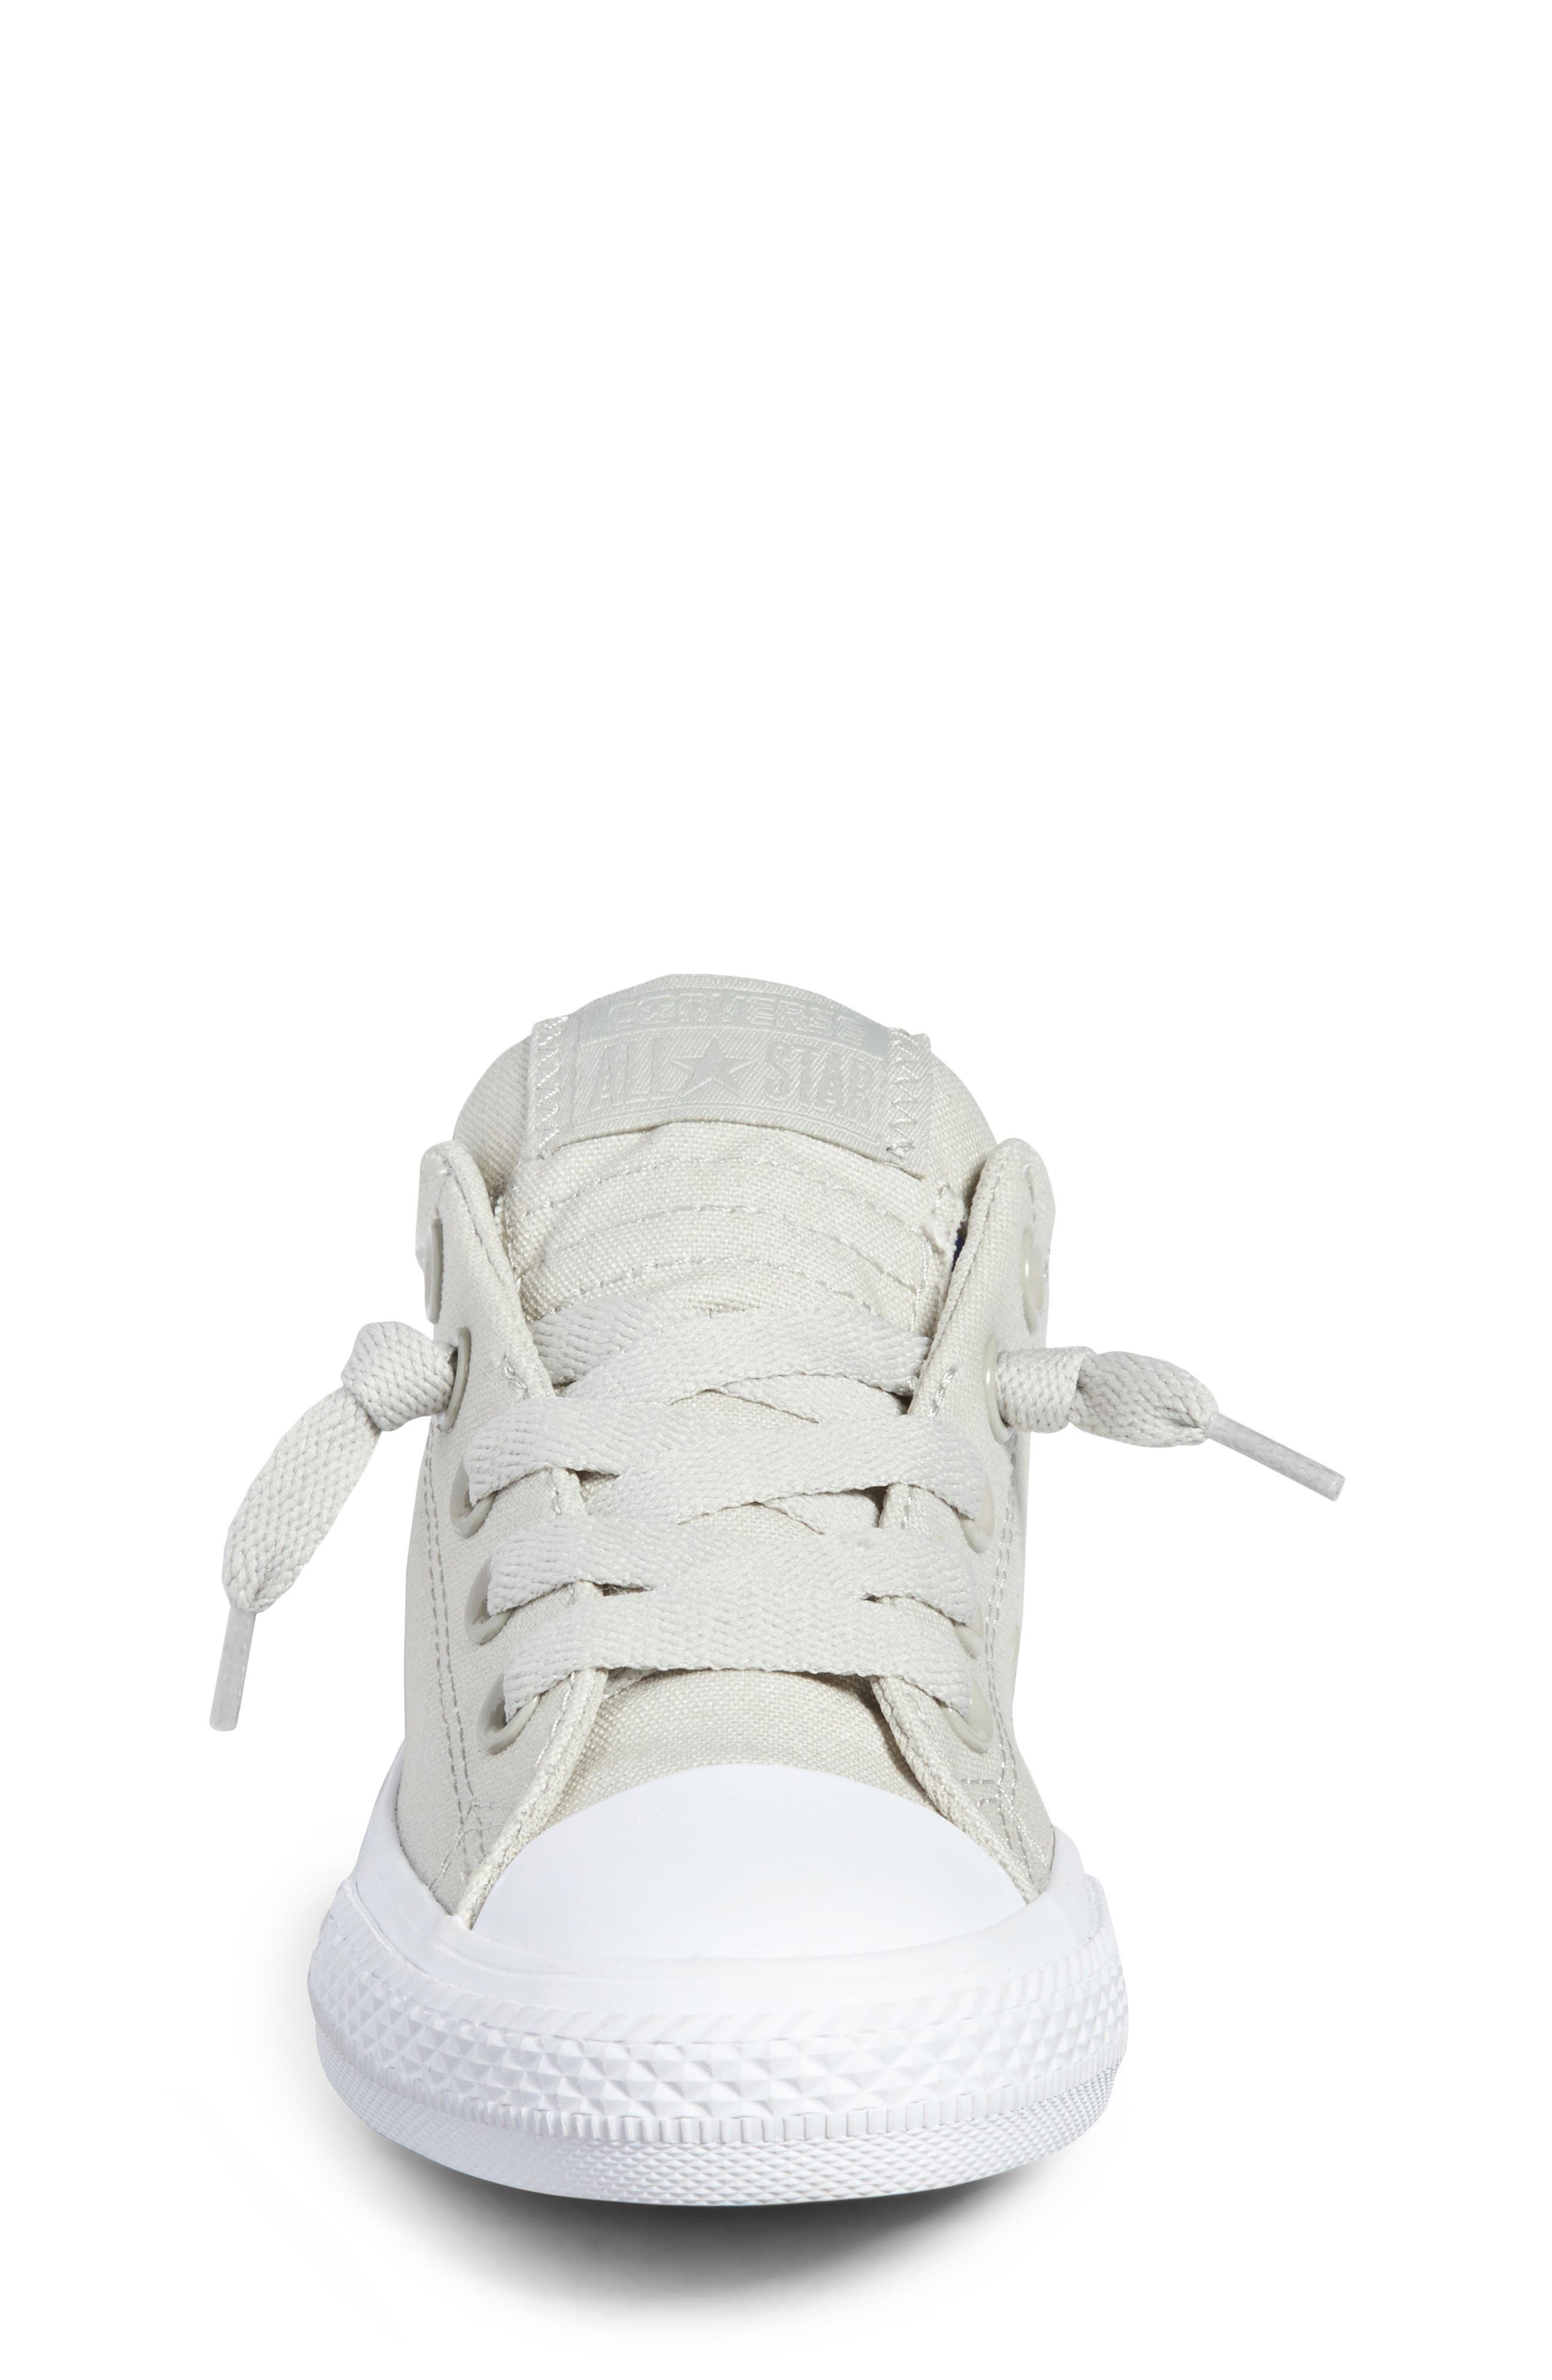 Chuck Taylor<sup>®</sup> All Star<sup>®</sup> Colorblock Street Sneaker,                             Alternate thumbnail 4, color,                             081